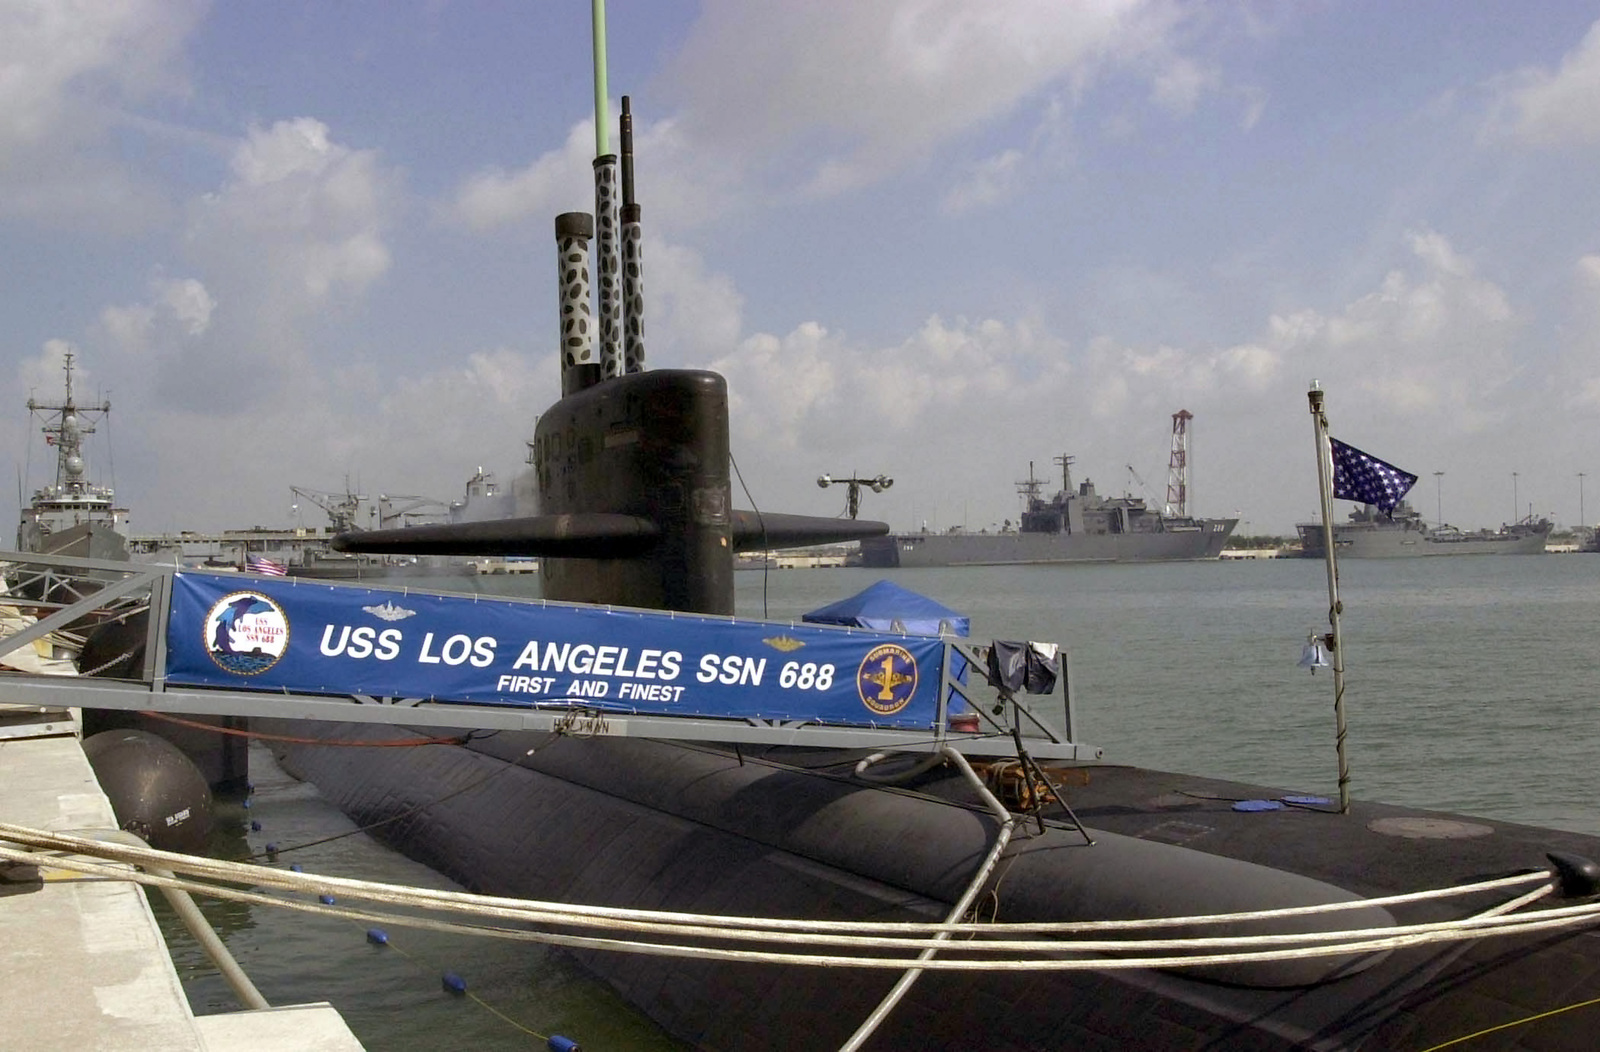 The US Navy (USN) nuclear powered attack submarine USS LOS